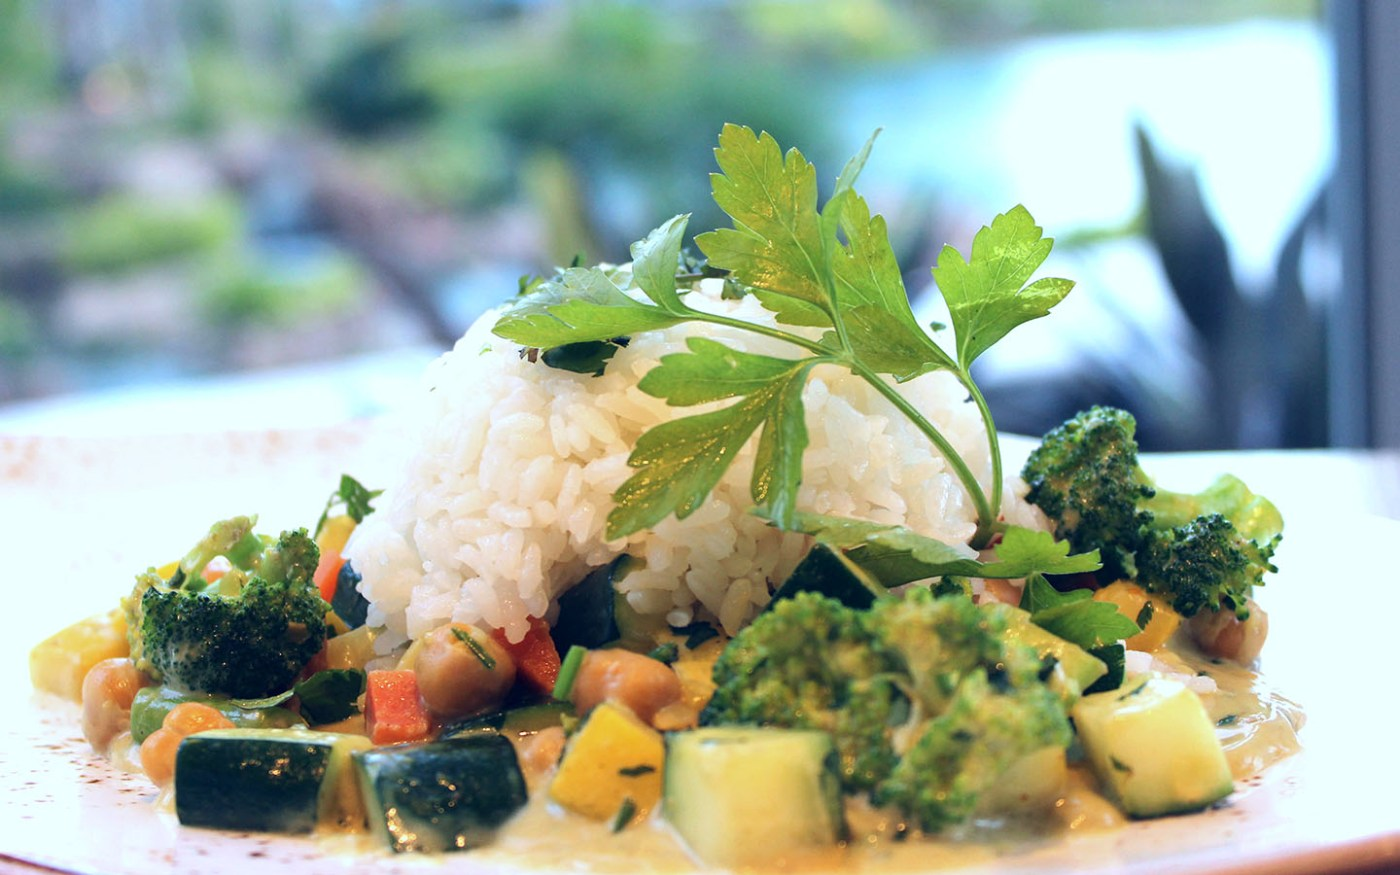 West Indian Vegetable Curry from Amatista Cookhouse at Loews Sapphire Falls Resort.